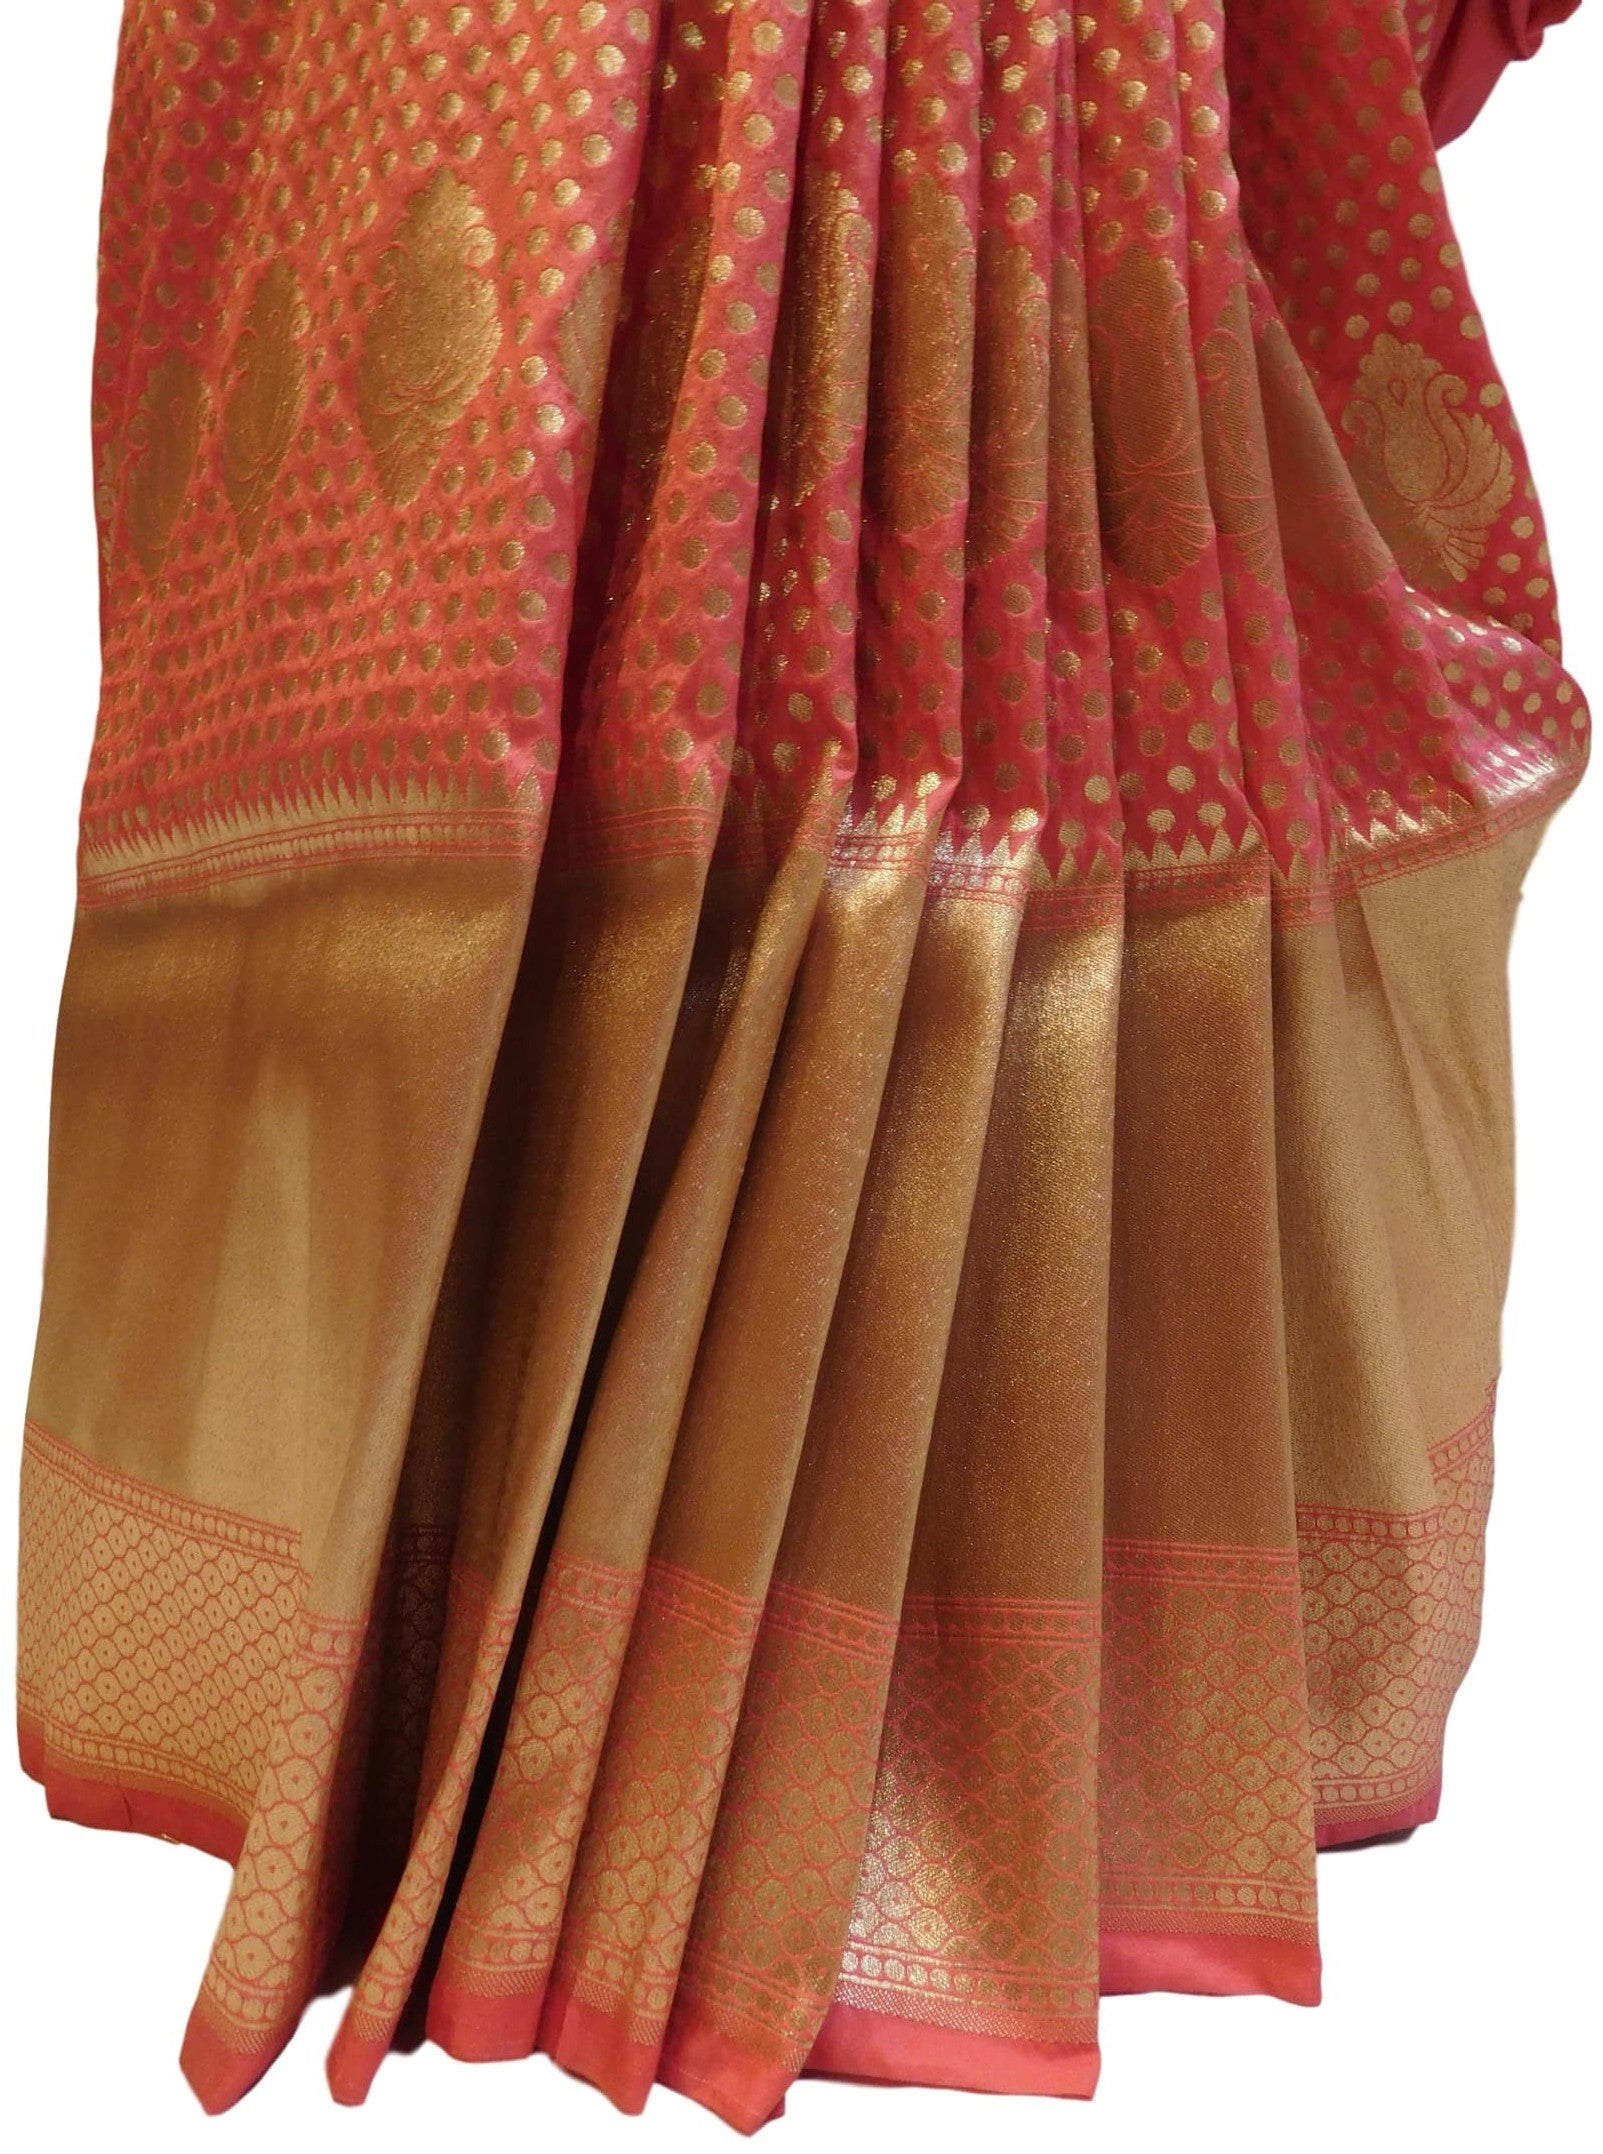 Gajari Traditional Designer Bridal Hand Weaven Pure Benarasi Zari Work Saree Sari With Blouse